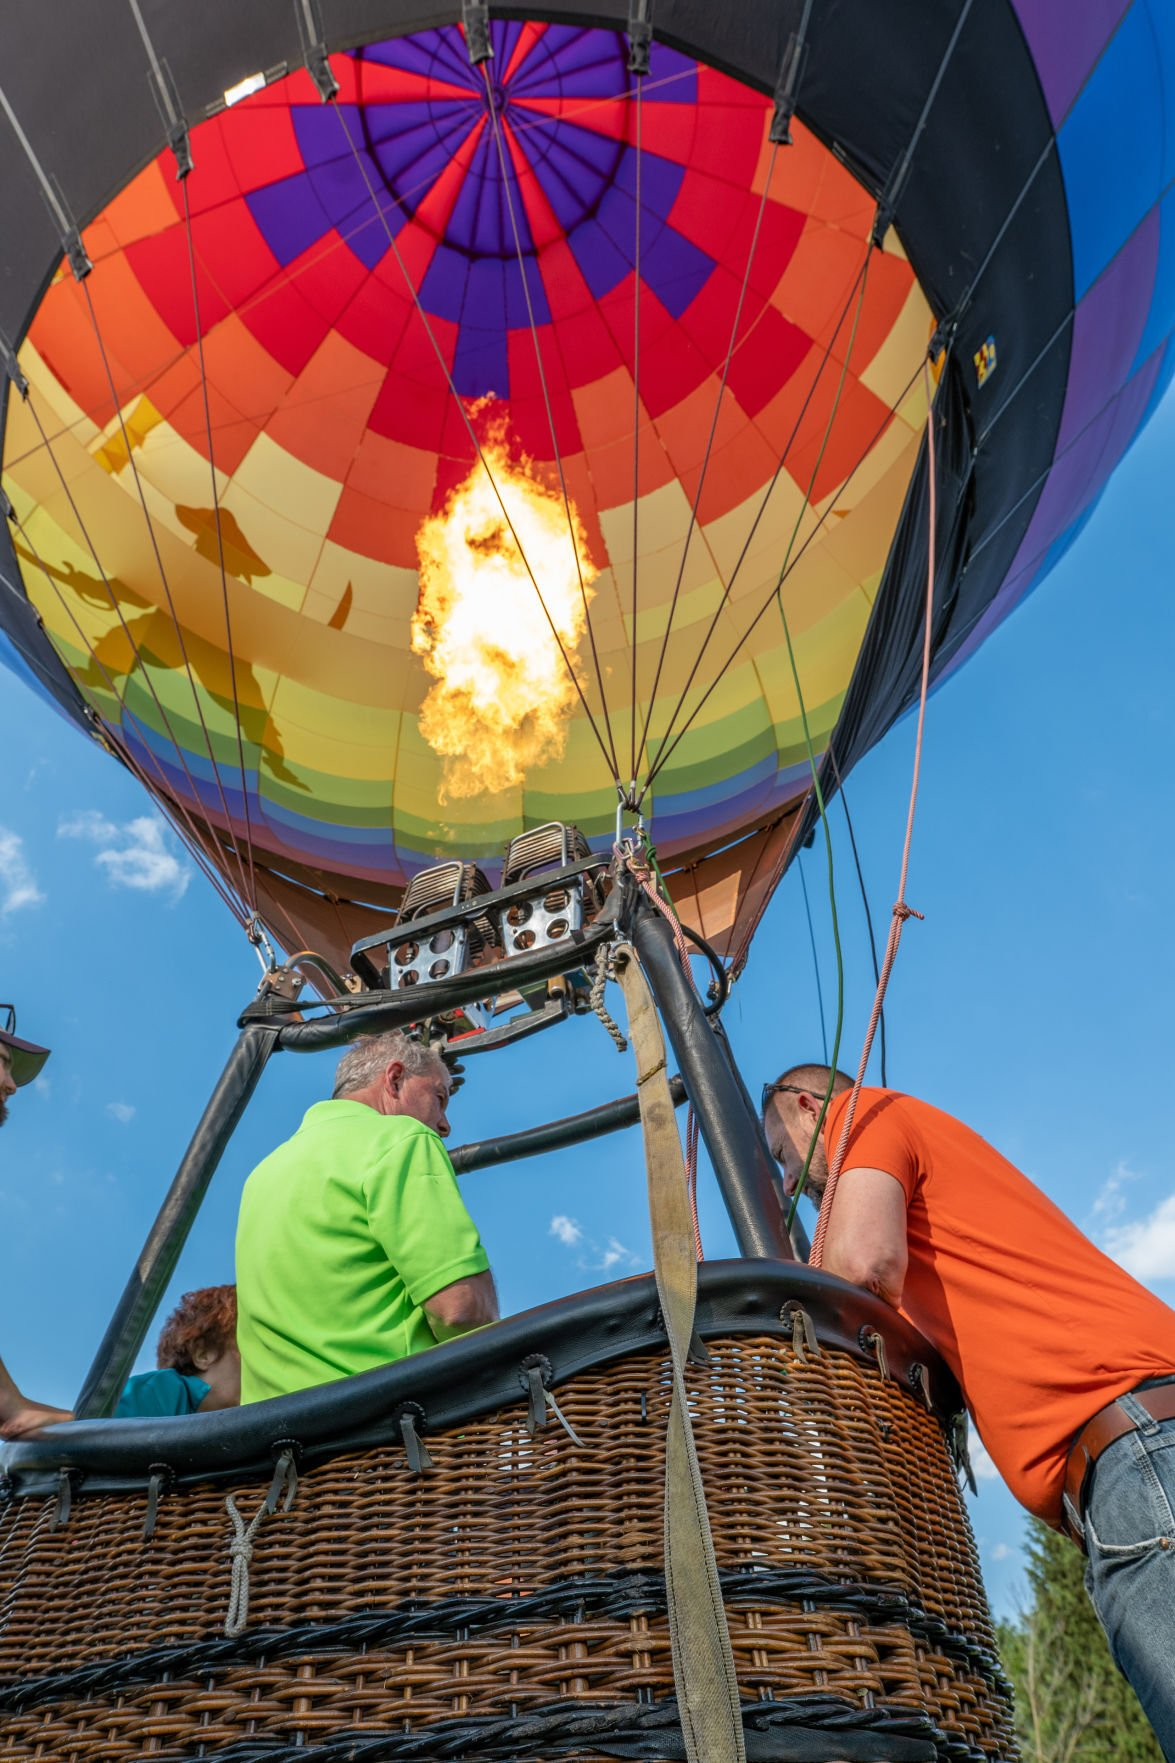 Reopen Balloons Over Verm 2